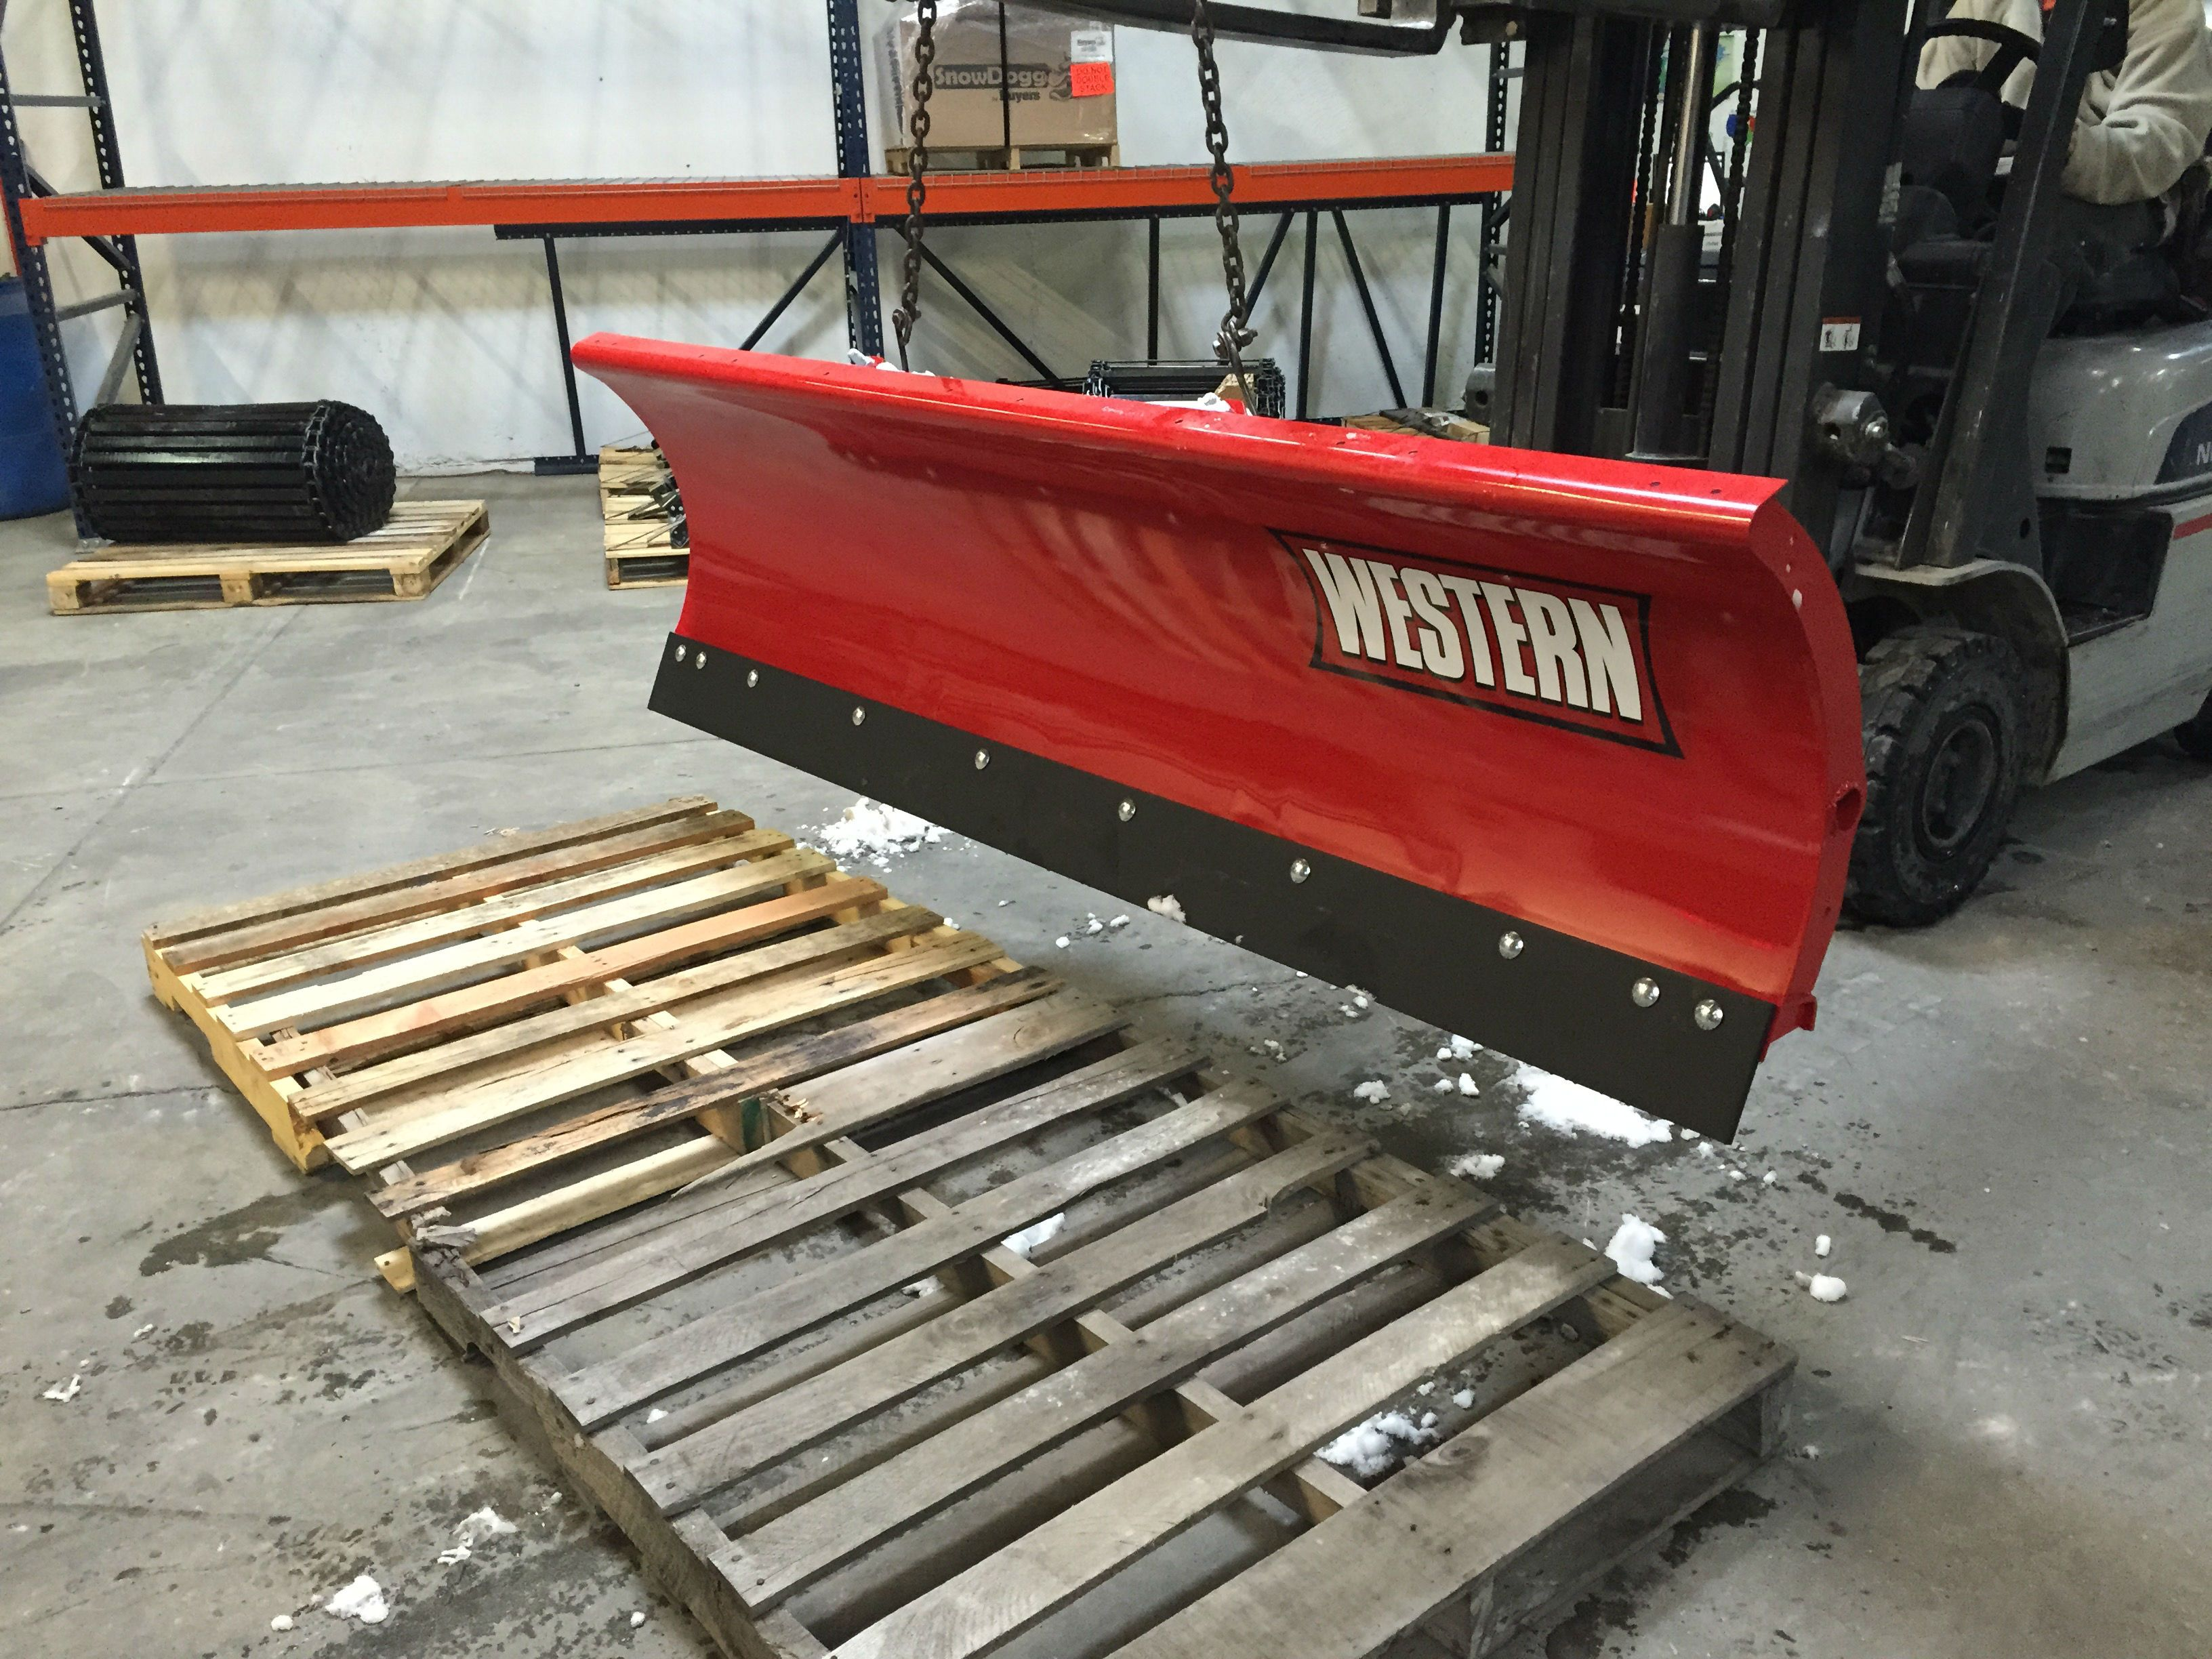 Western snow plow headed to its new home